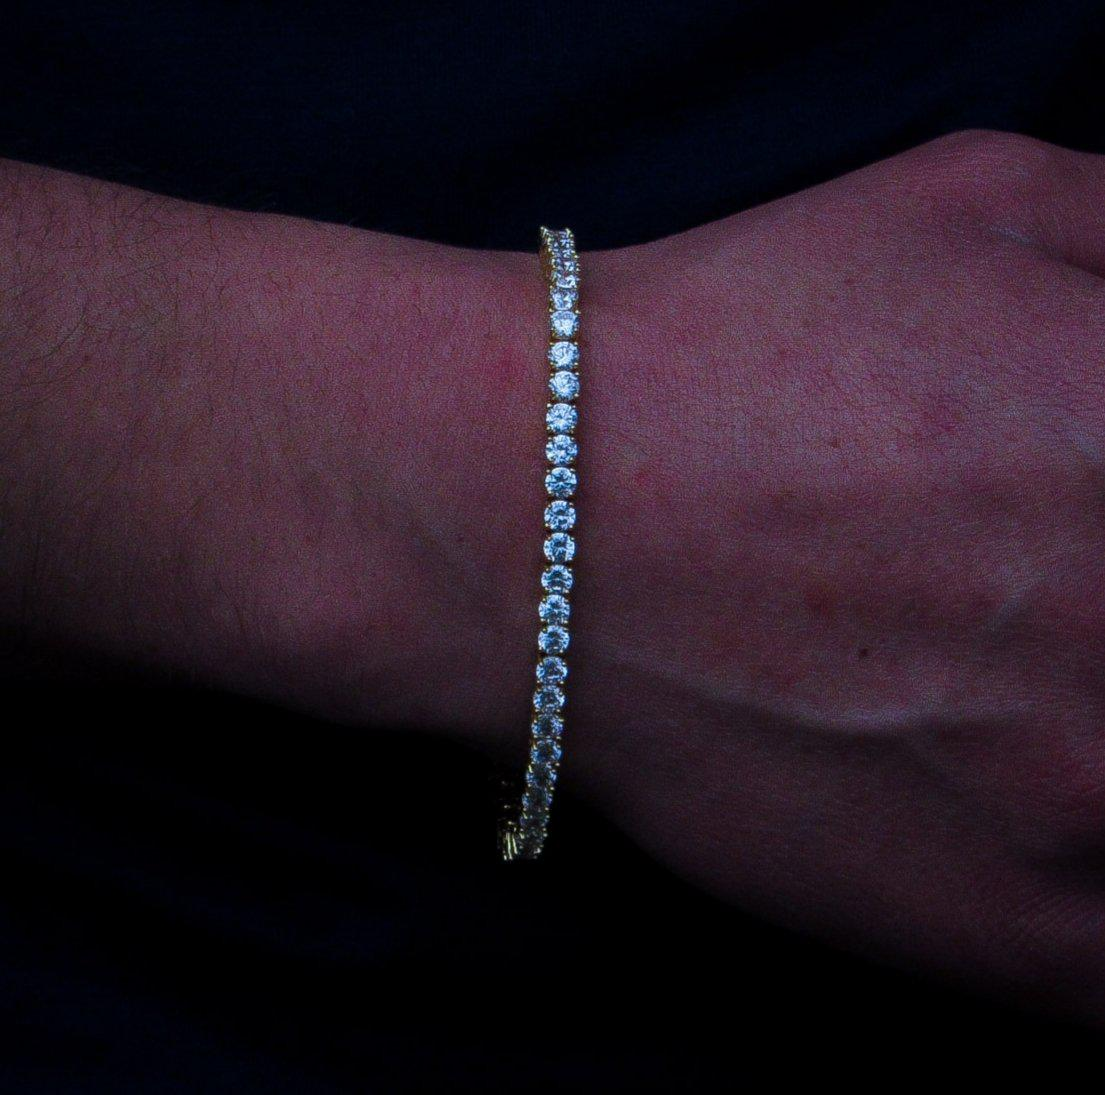 Round Cut 4mm Diamond Tennis Bracelet in Yellow Gold - IcedGold